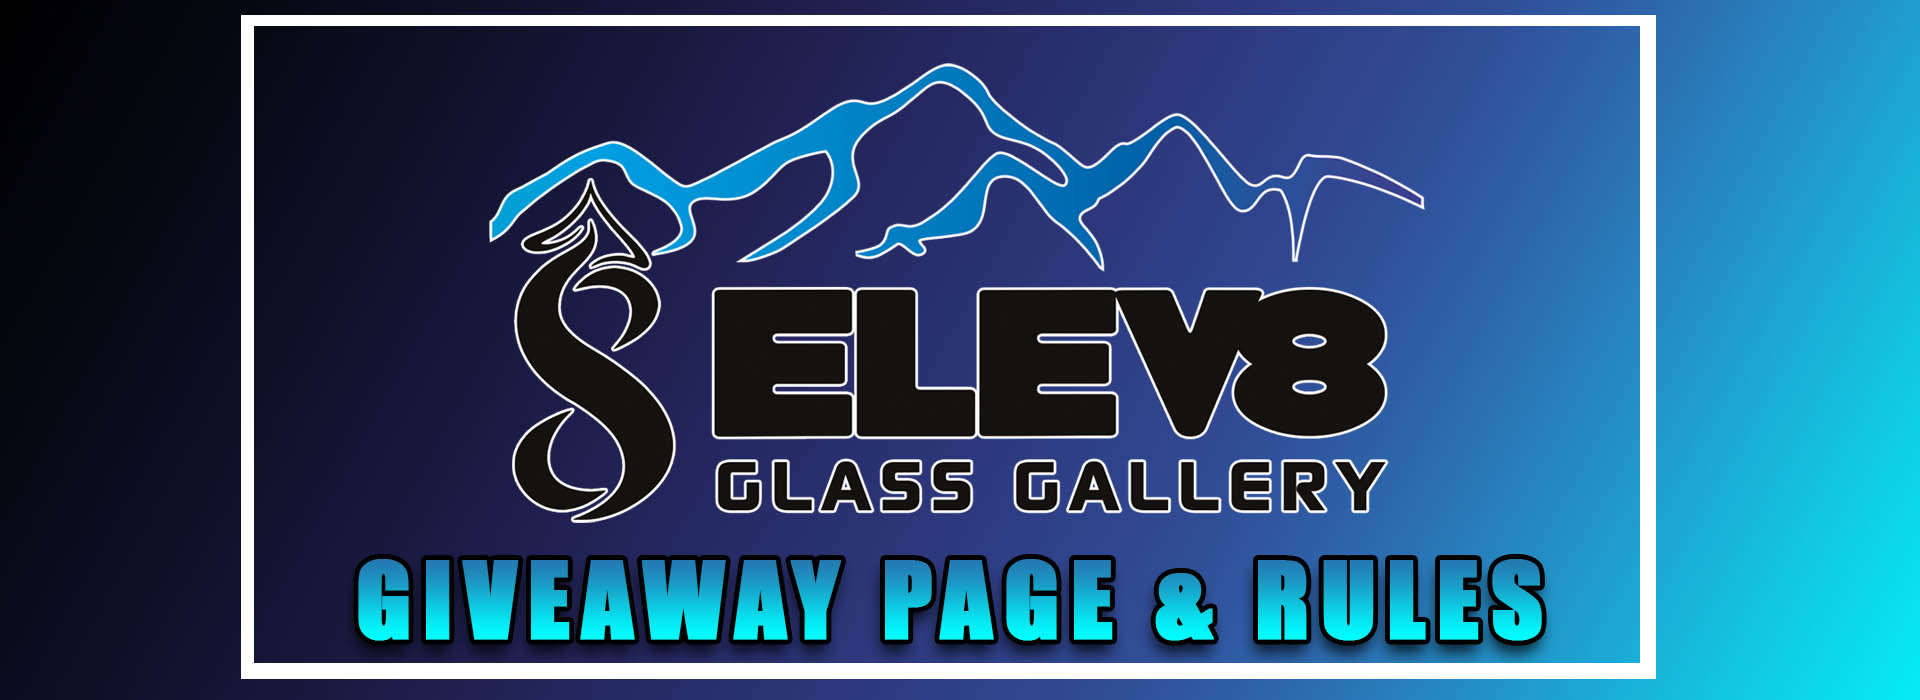 elev8-glass-gallery-rules-banner-page.jpg